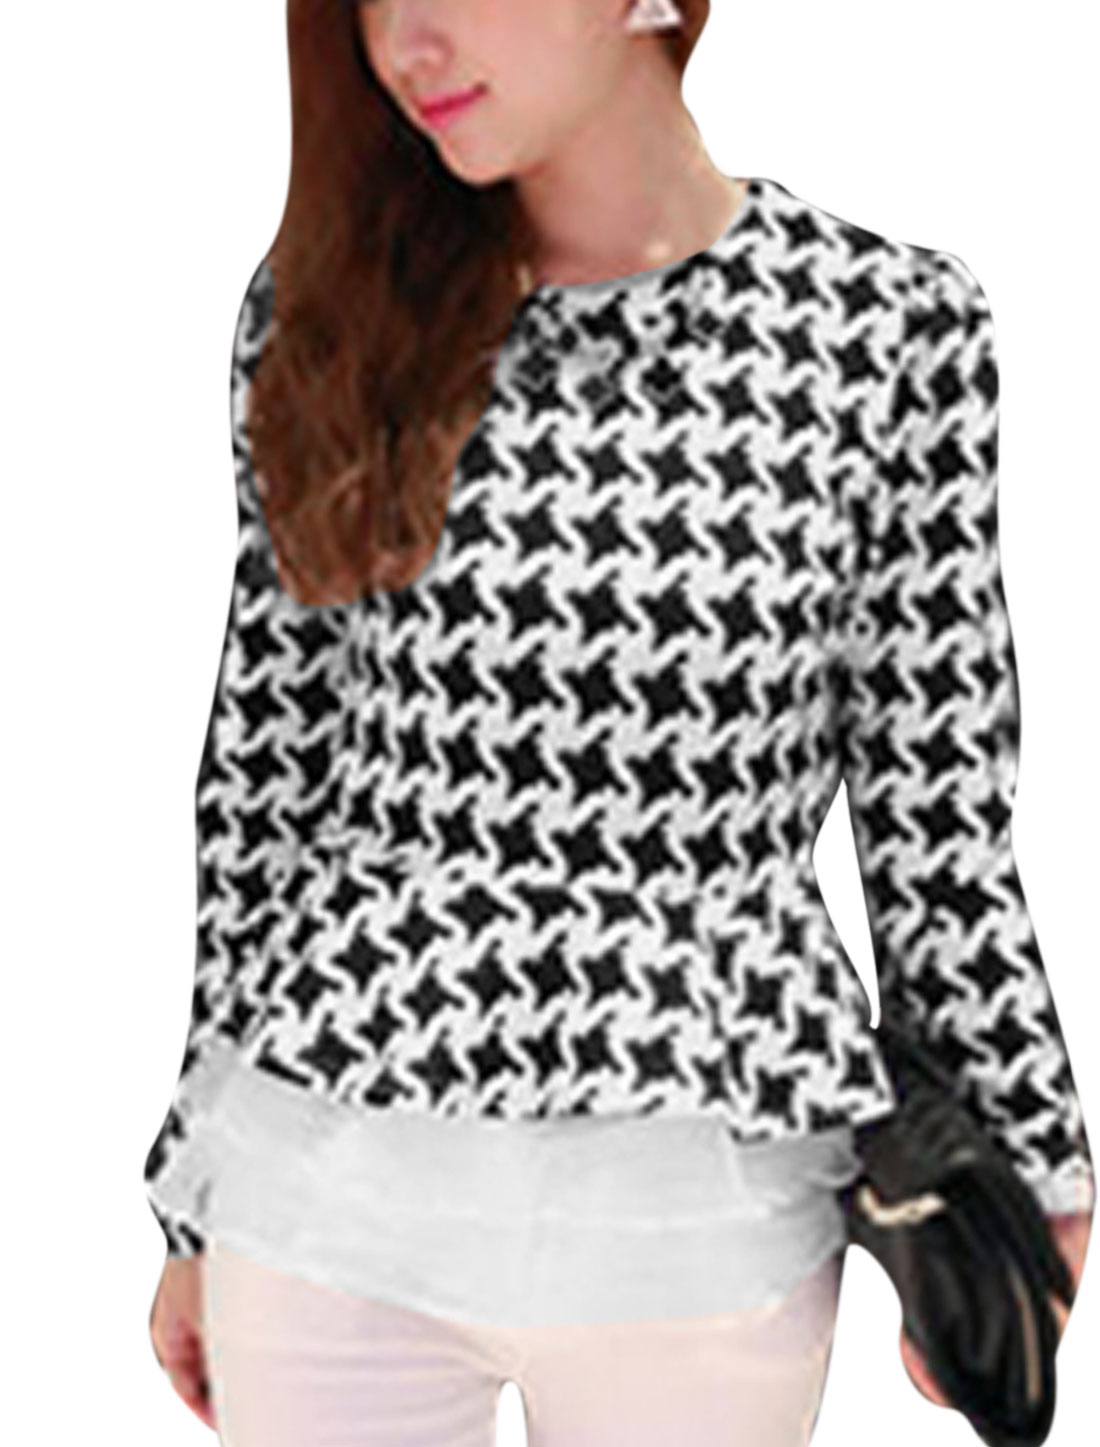 Ladies Organza Splicing Houndstooth Sexy Beige Peplum Top S